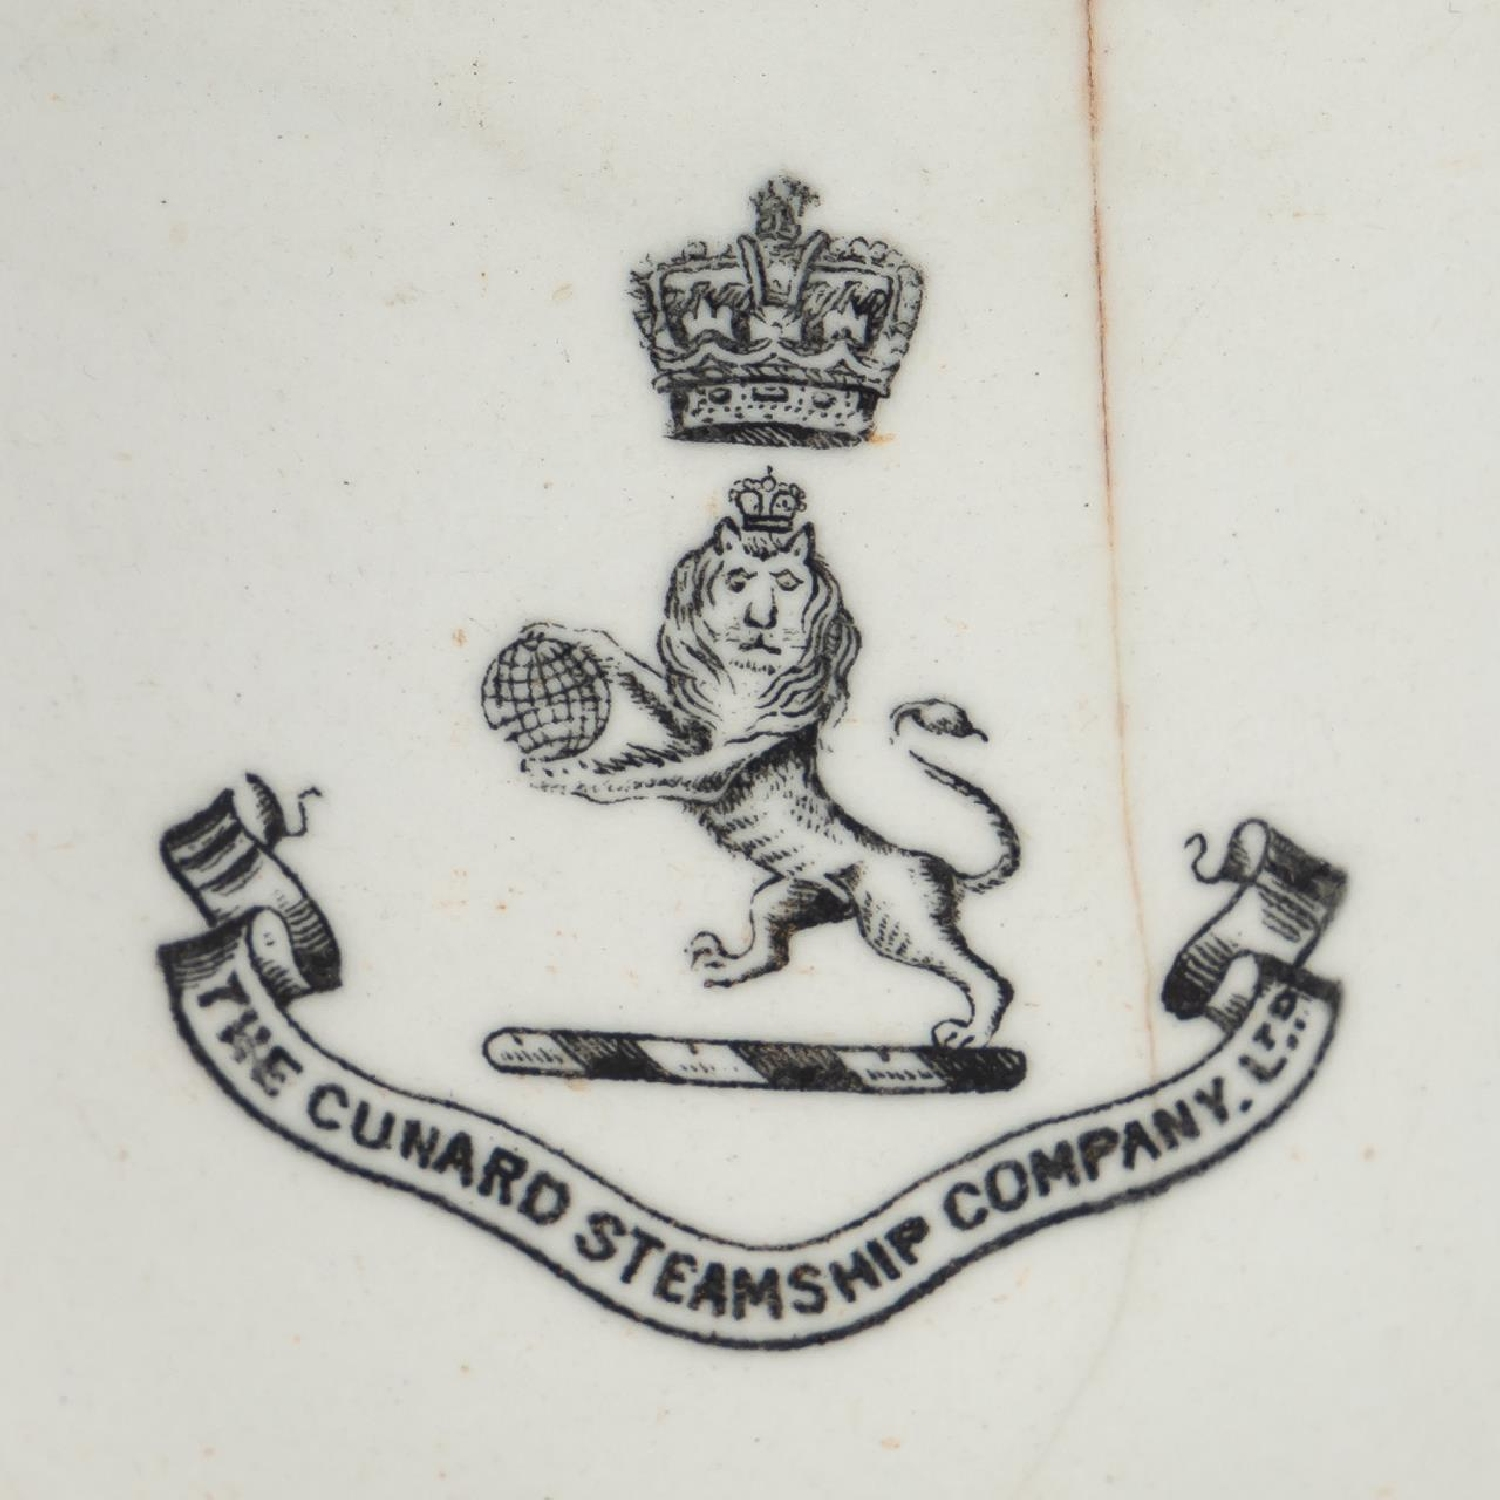 RMS CARPATHIA, SALVAGED THIRD CLASS CUP WITH LOGO - Image 9 of 9